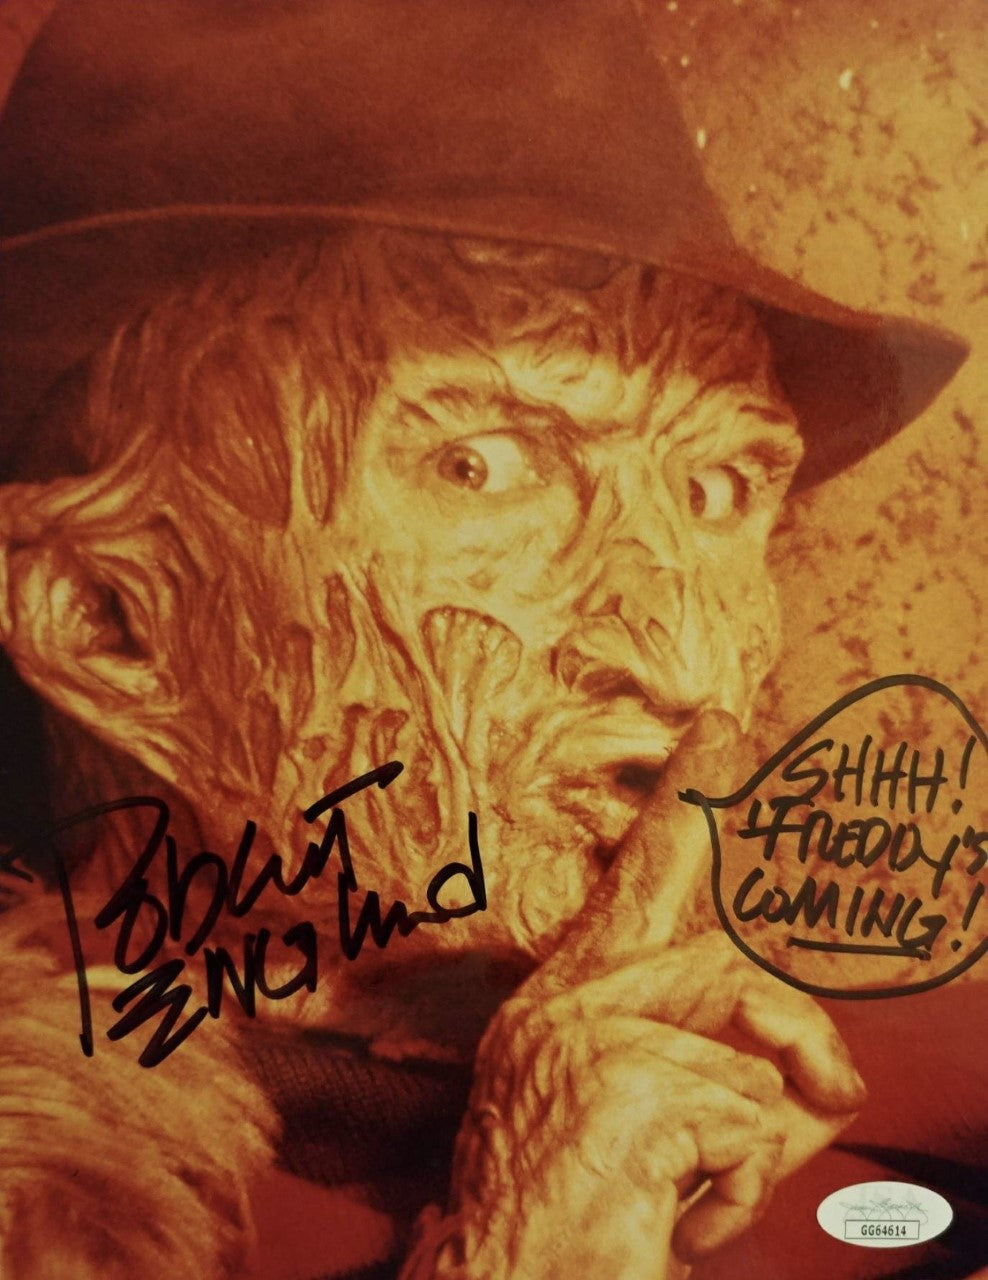 Robert Englund Signed Autographed 8X10 Photo